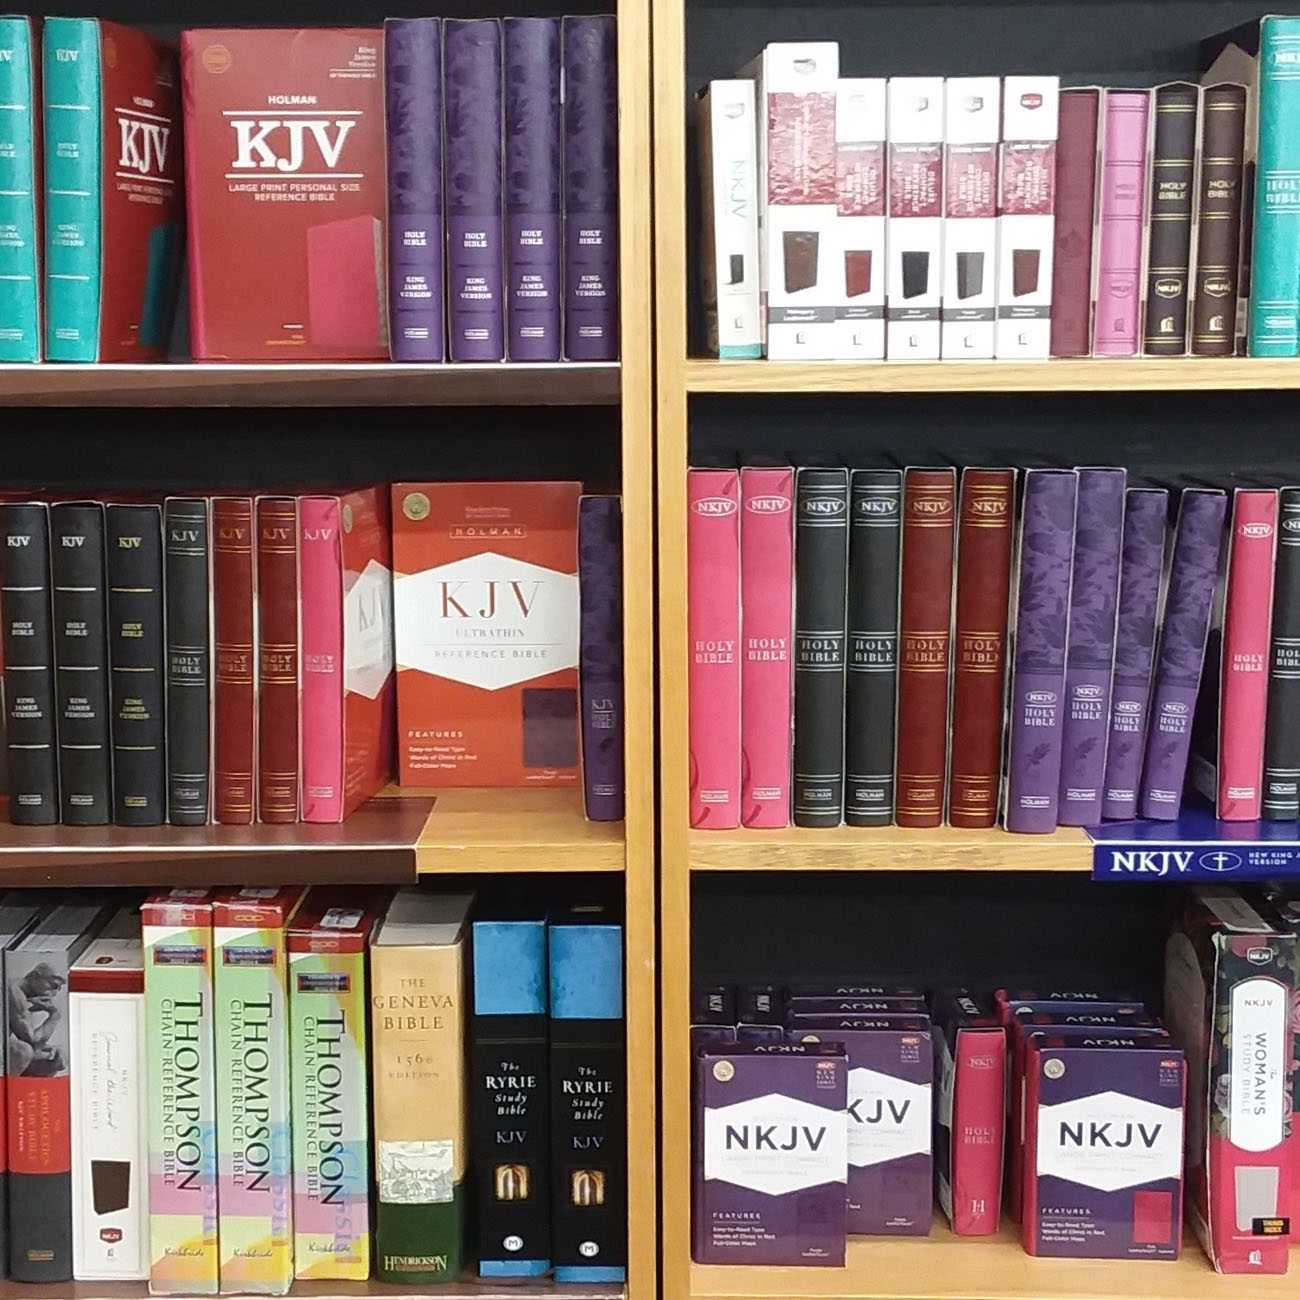 guiness book of world record, Bible